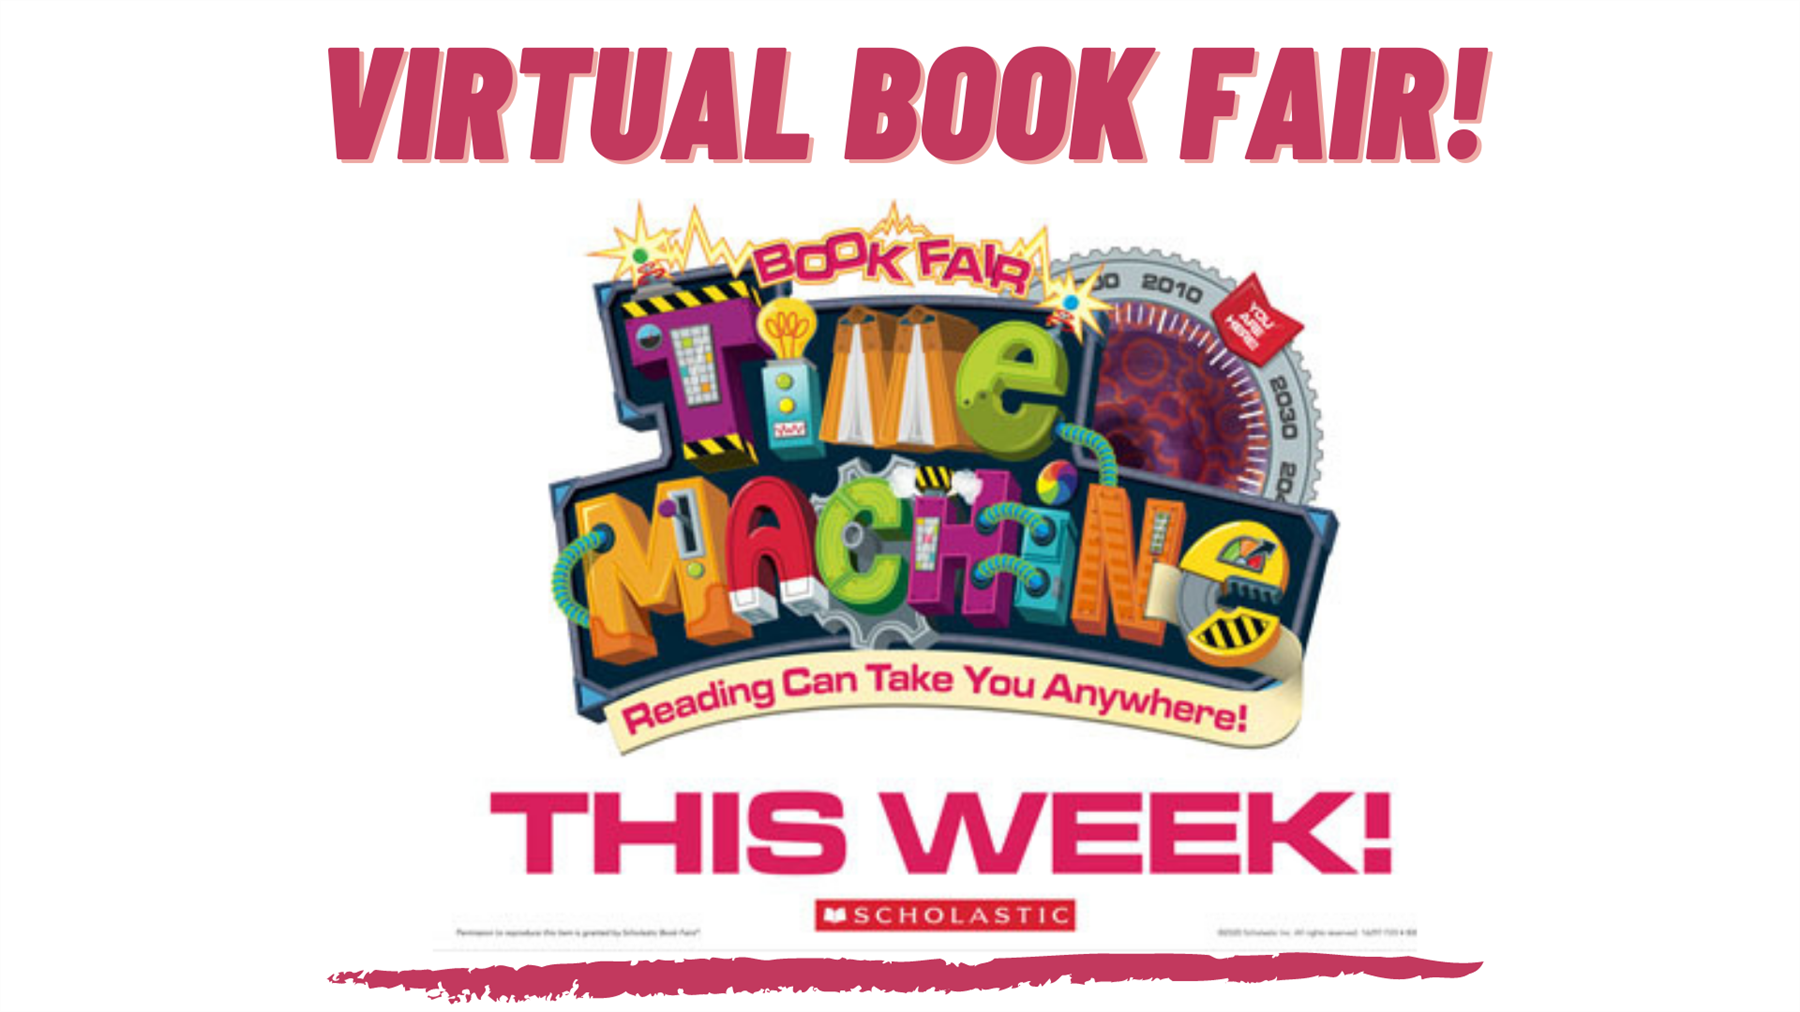 Join us for our book fair 4/8-4/12